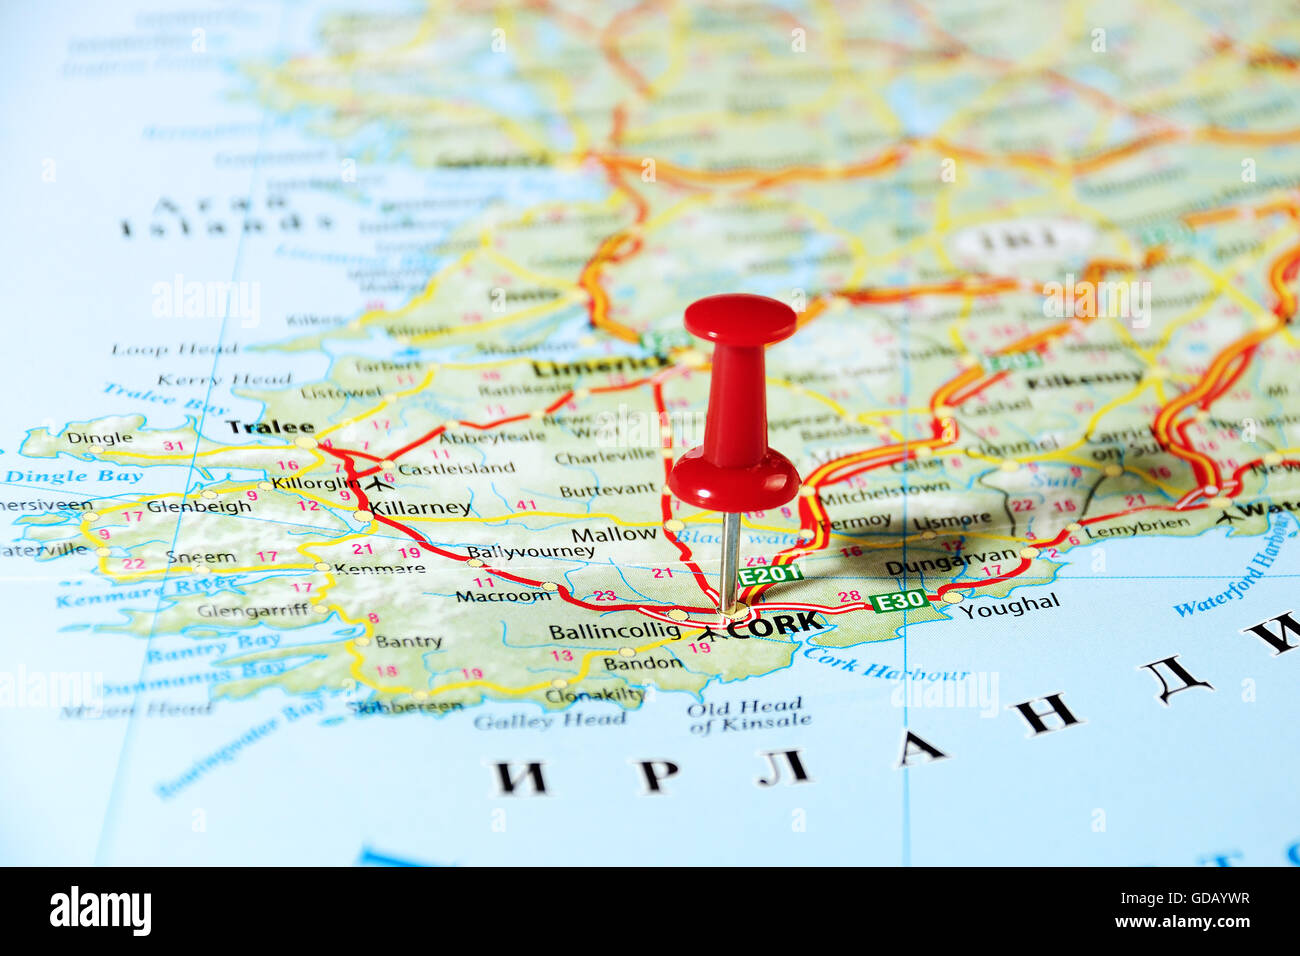 Push pin world travel map map of the usa with pins all over diy cork ireland united kingdom map and pin travel concept gumiabroncs Gallery